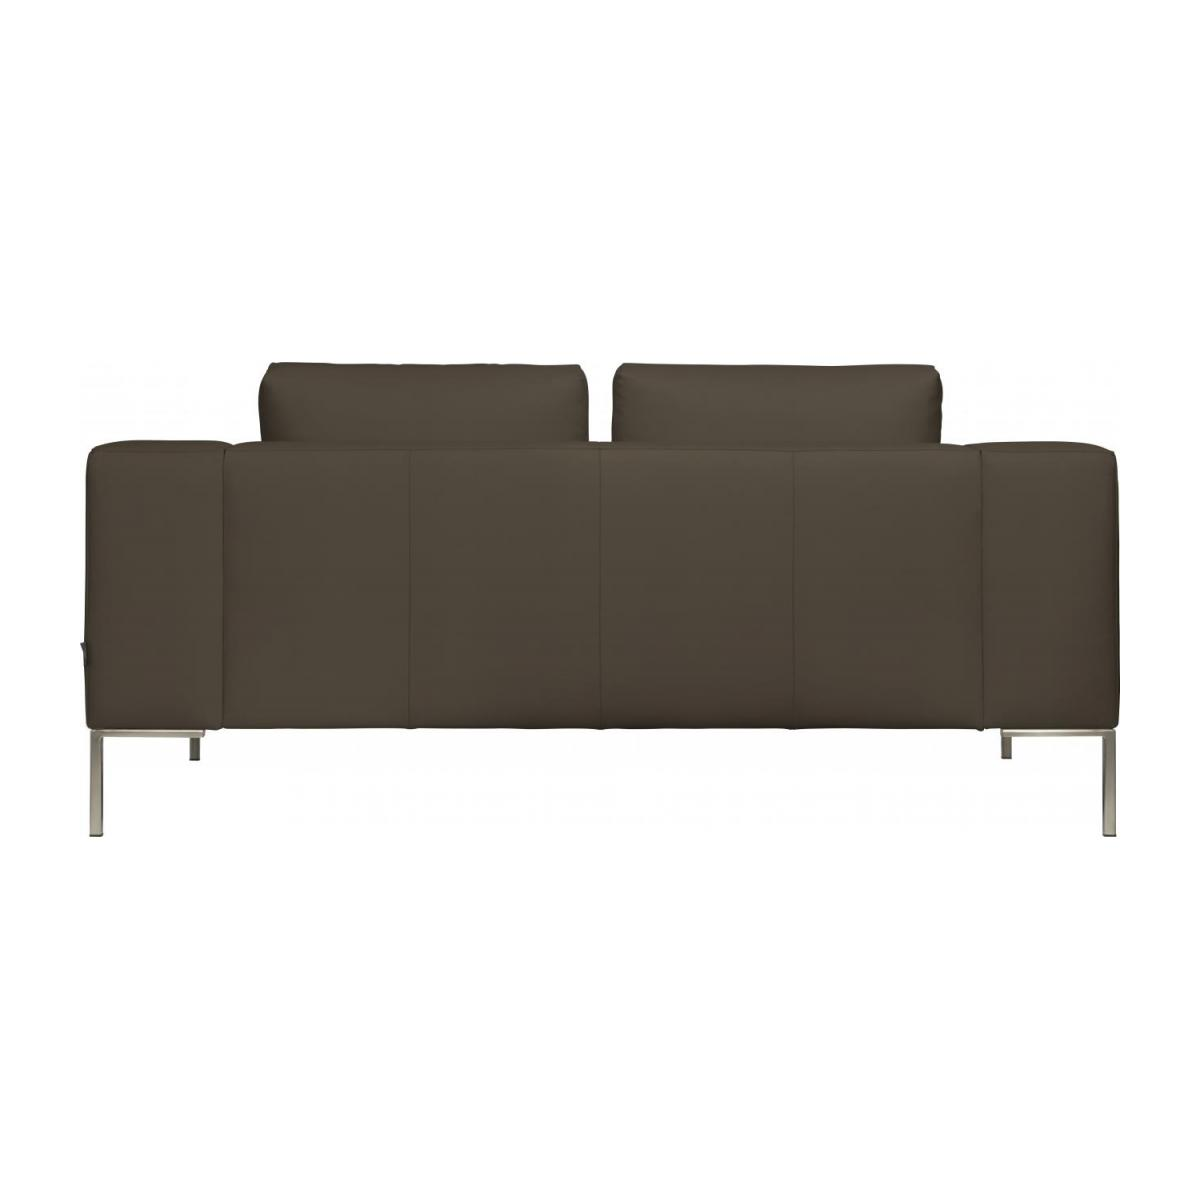 2 seater sofa in Eton veined leather, stone n°5